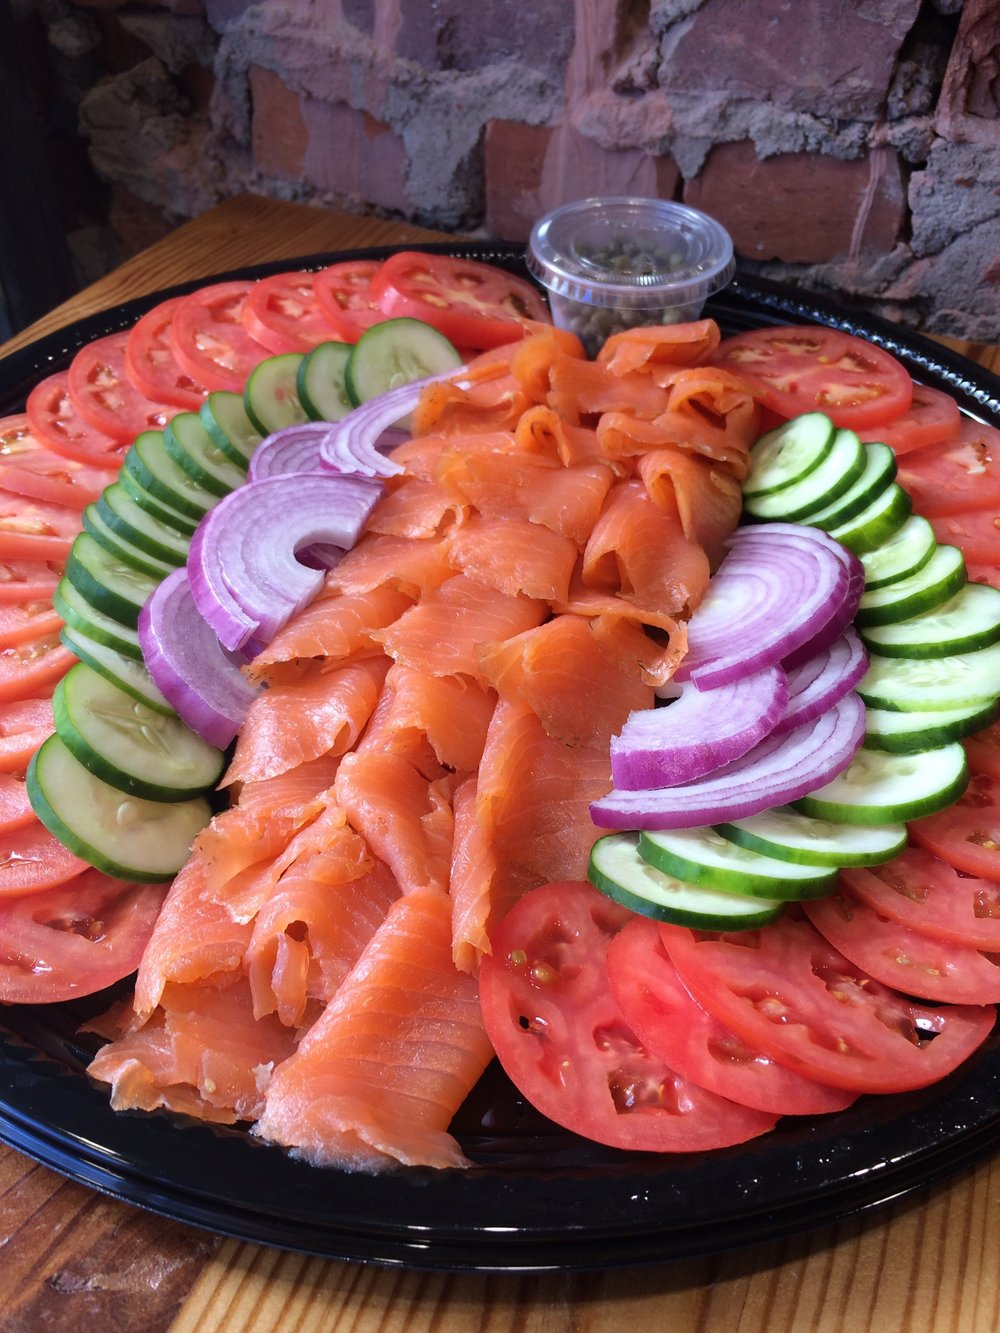 Lox Platter (with red onion, cucumber, tomato, & capers)